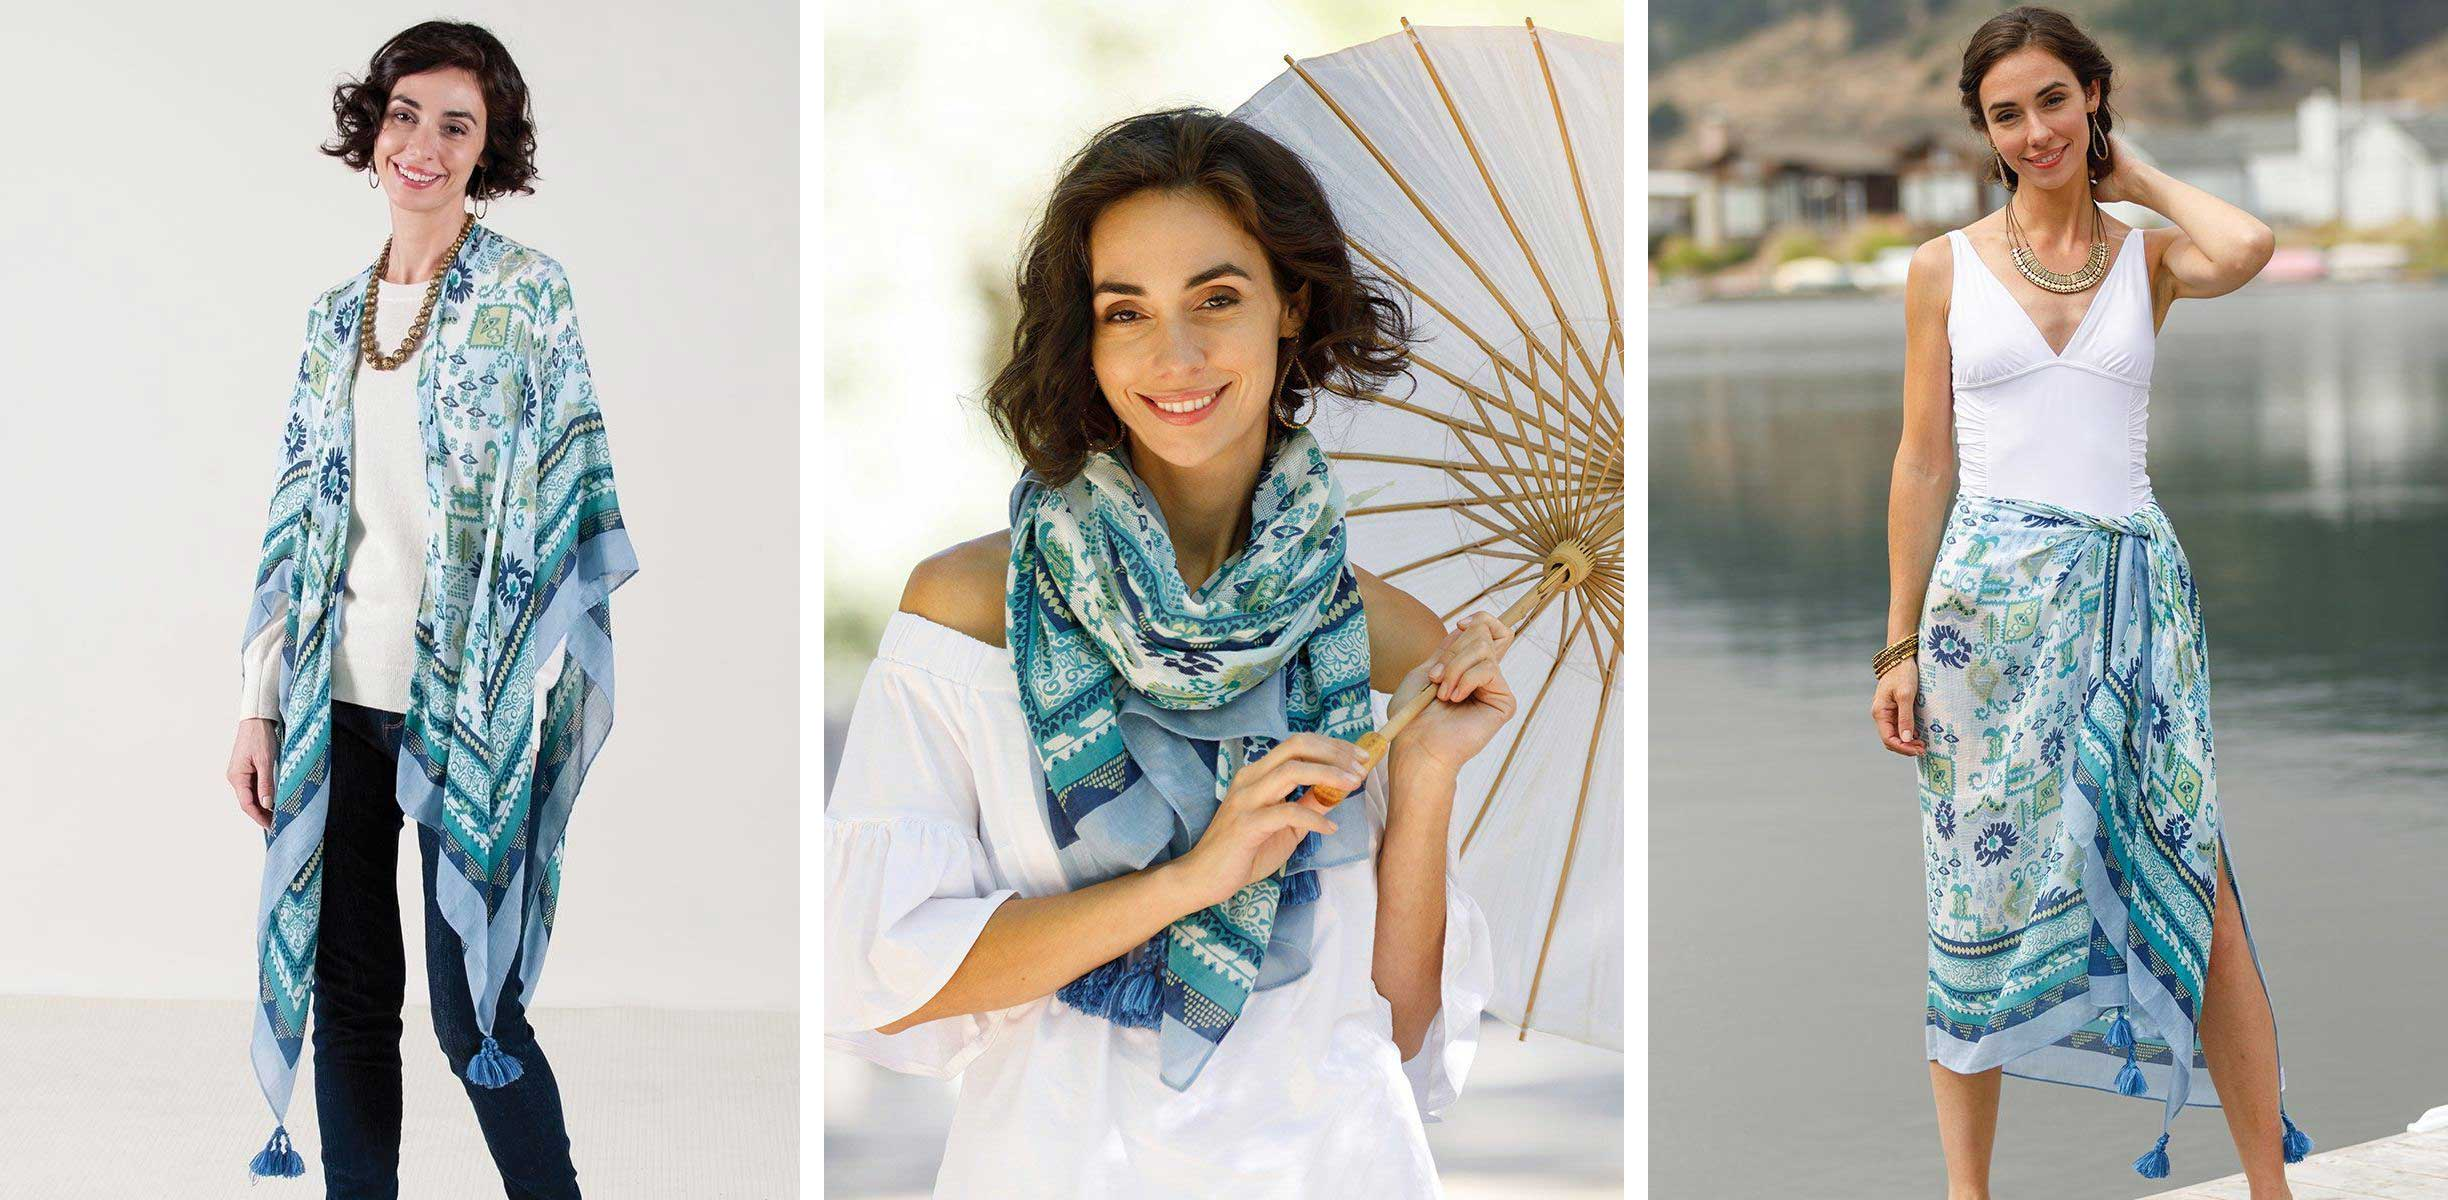 3 photos of a woman wearing the same kimono wrap over a sweater, a white summer shirt, and a white bathingsuit